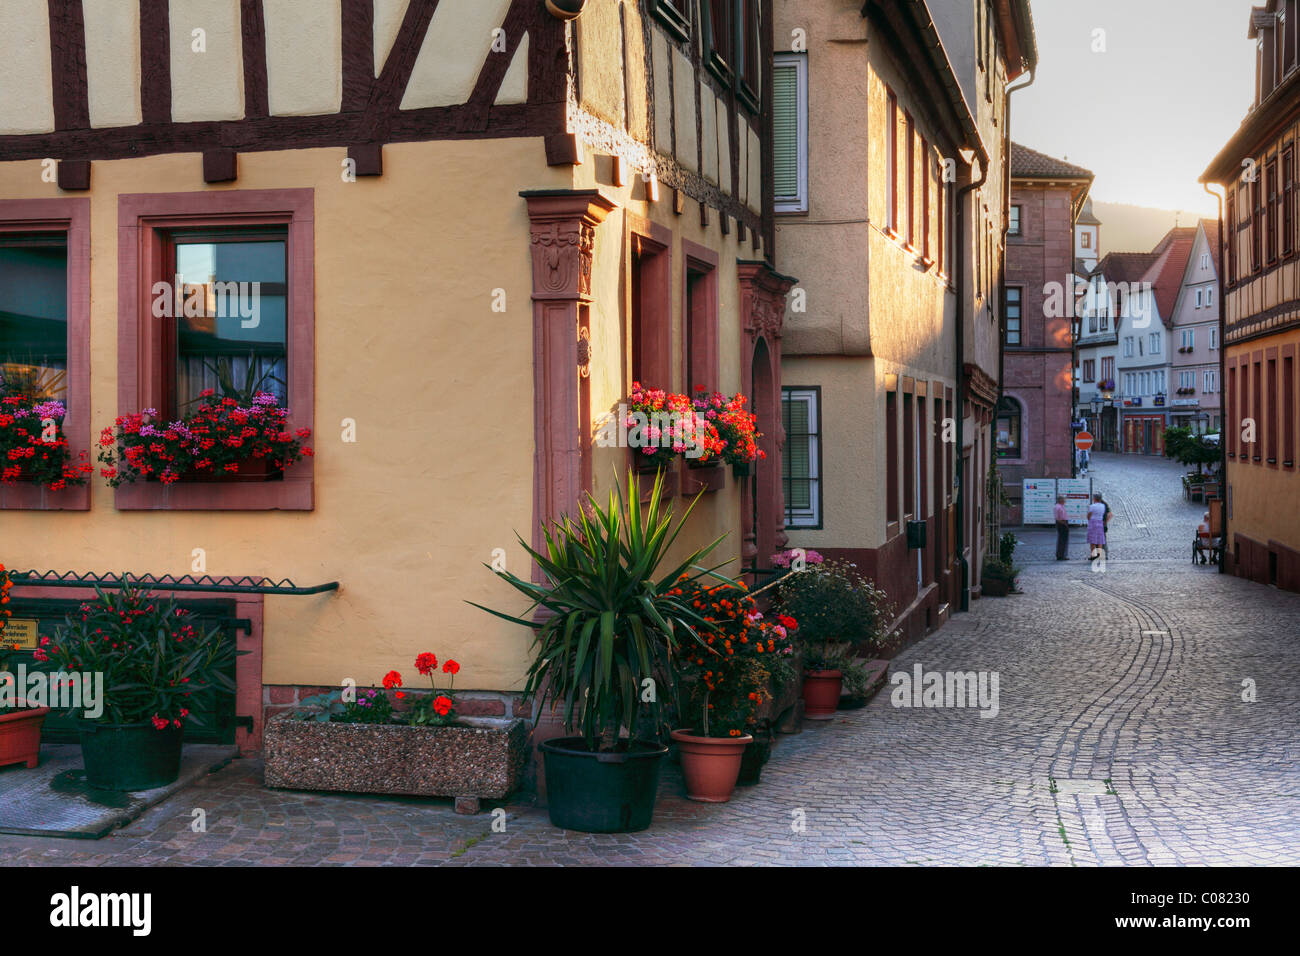 Grosse Kirchgasse lane, Lohr am Main, Mainfranken, Lower Franconia, Franconia, Bavaria, Germany, Europe - Stock Image